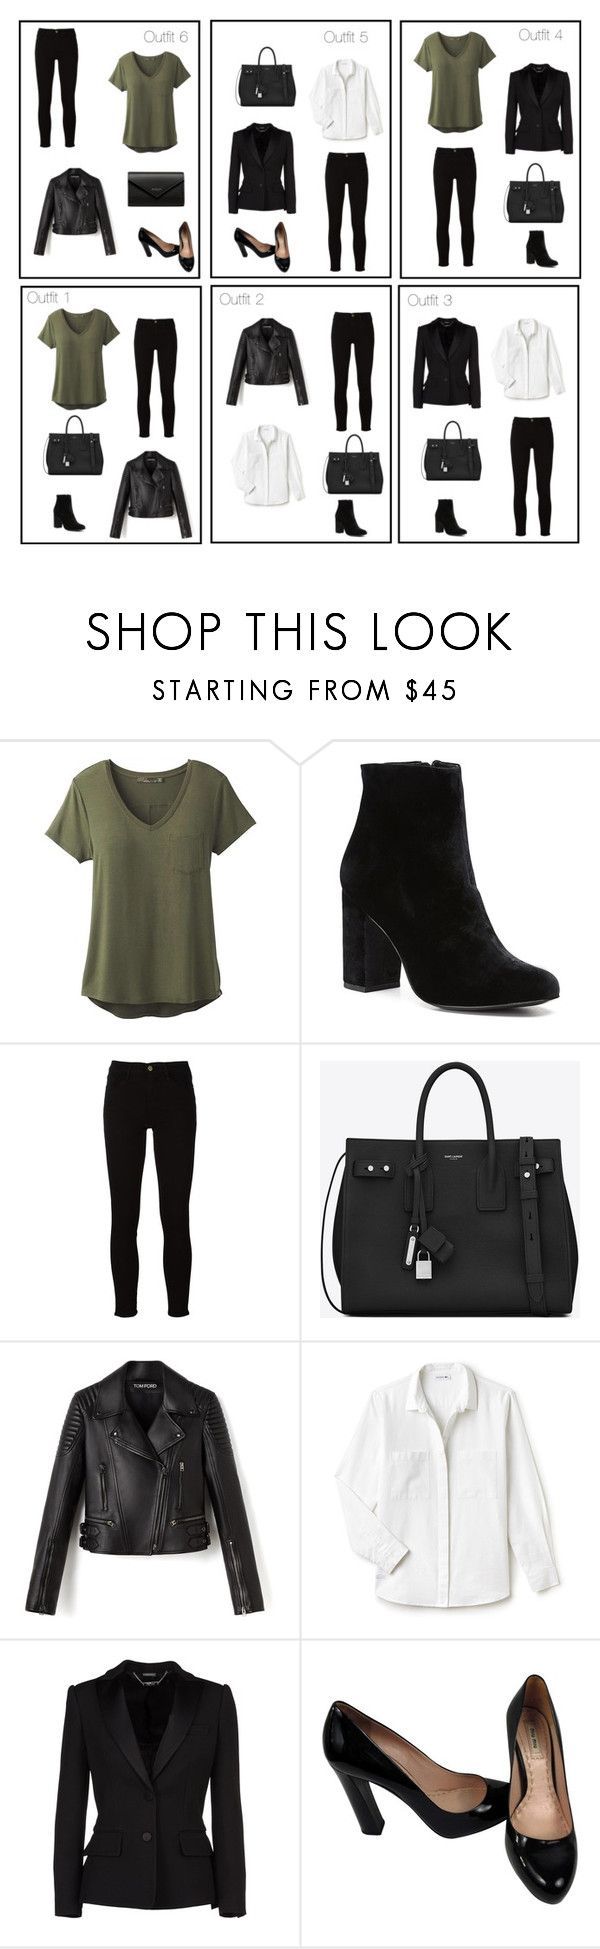 """6 outfits - basic clothes"" by monika1555 on Polyvore featuring prAna, Witchery, Frame, Yves Saint Laurent, Lacoste, Alexander McQueen, Miu Miu and Balenciaga"